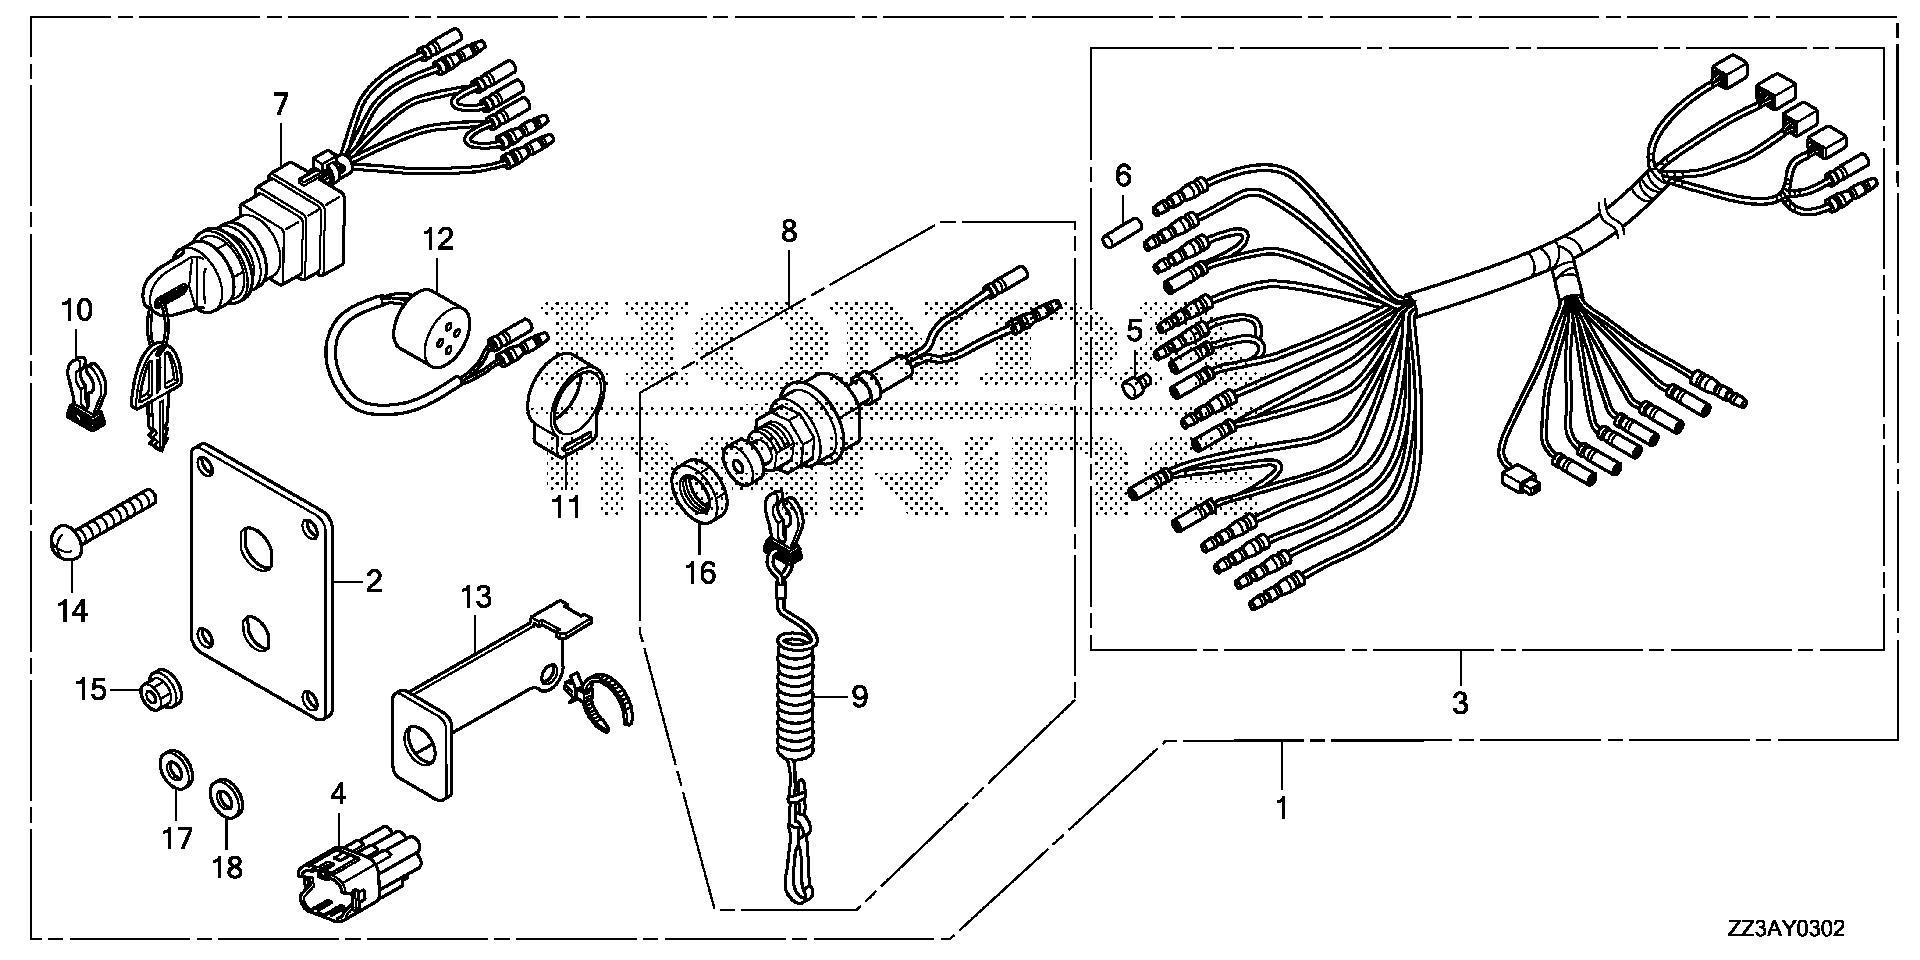 ford mustang drivetrain diagram